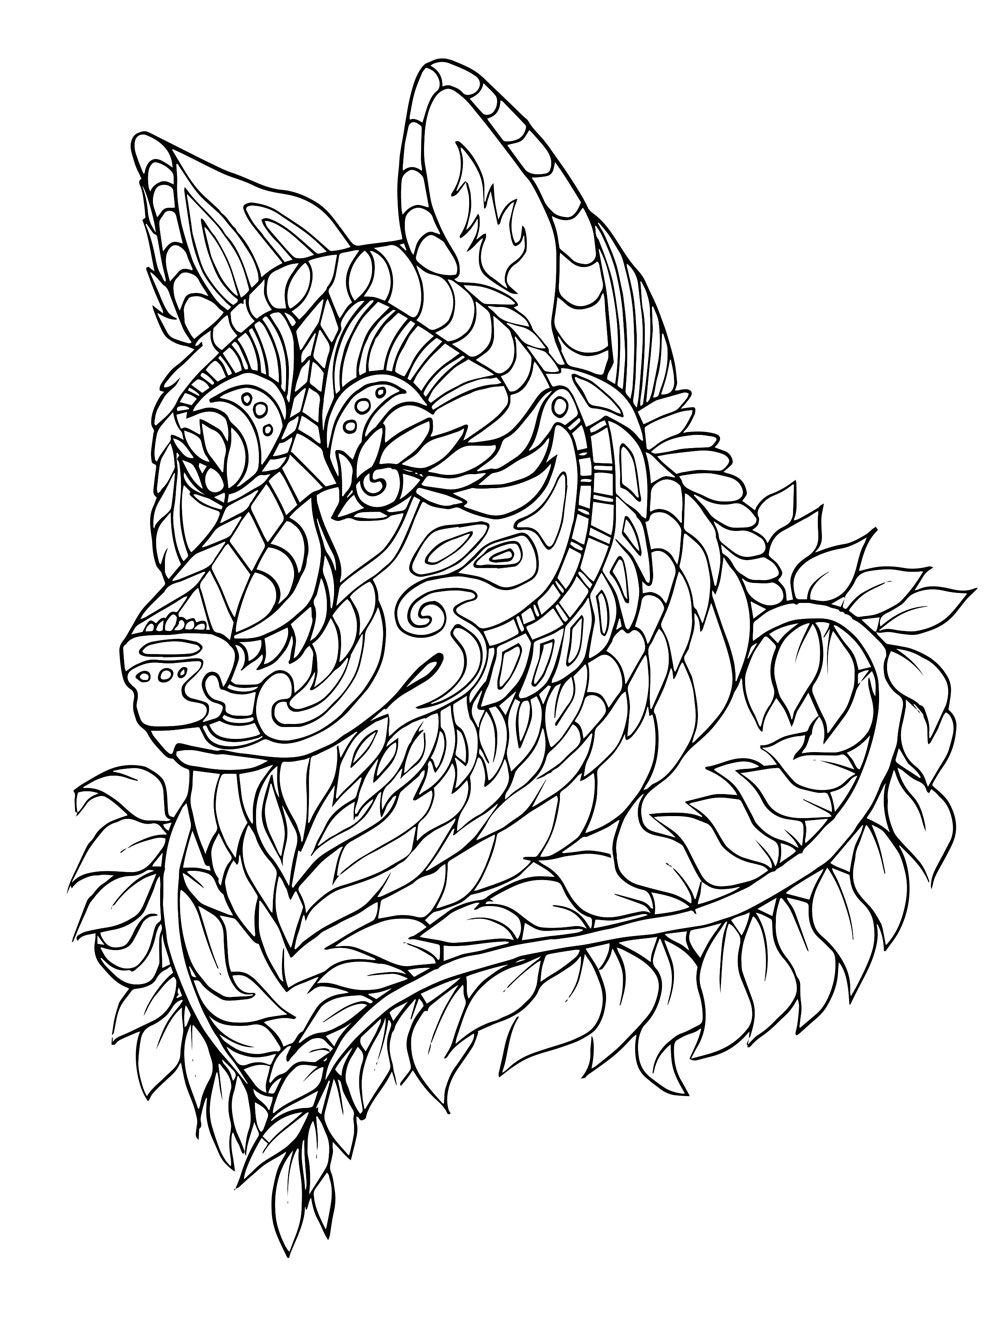 Pin By Celia Kelly On Wood Art Free Adult Coloring Pages Mandala